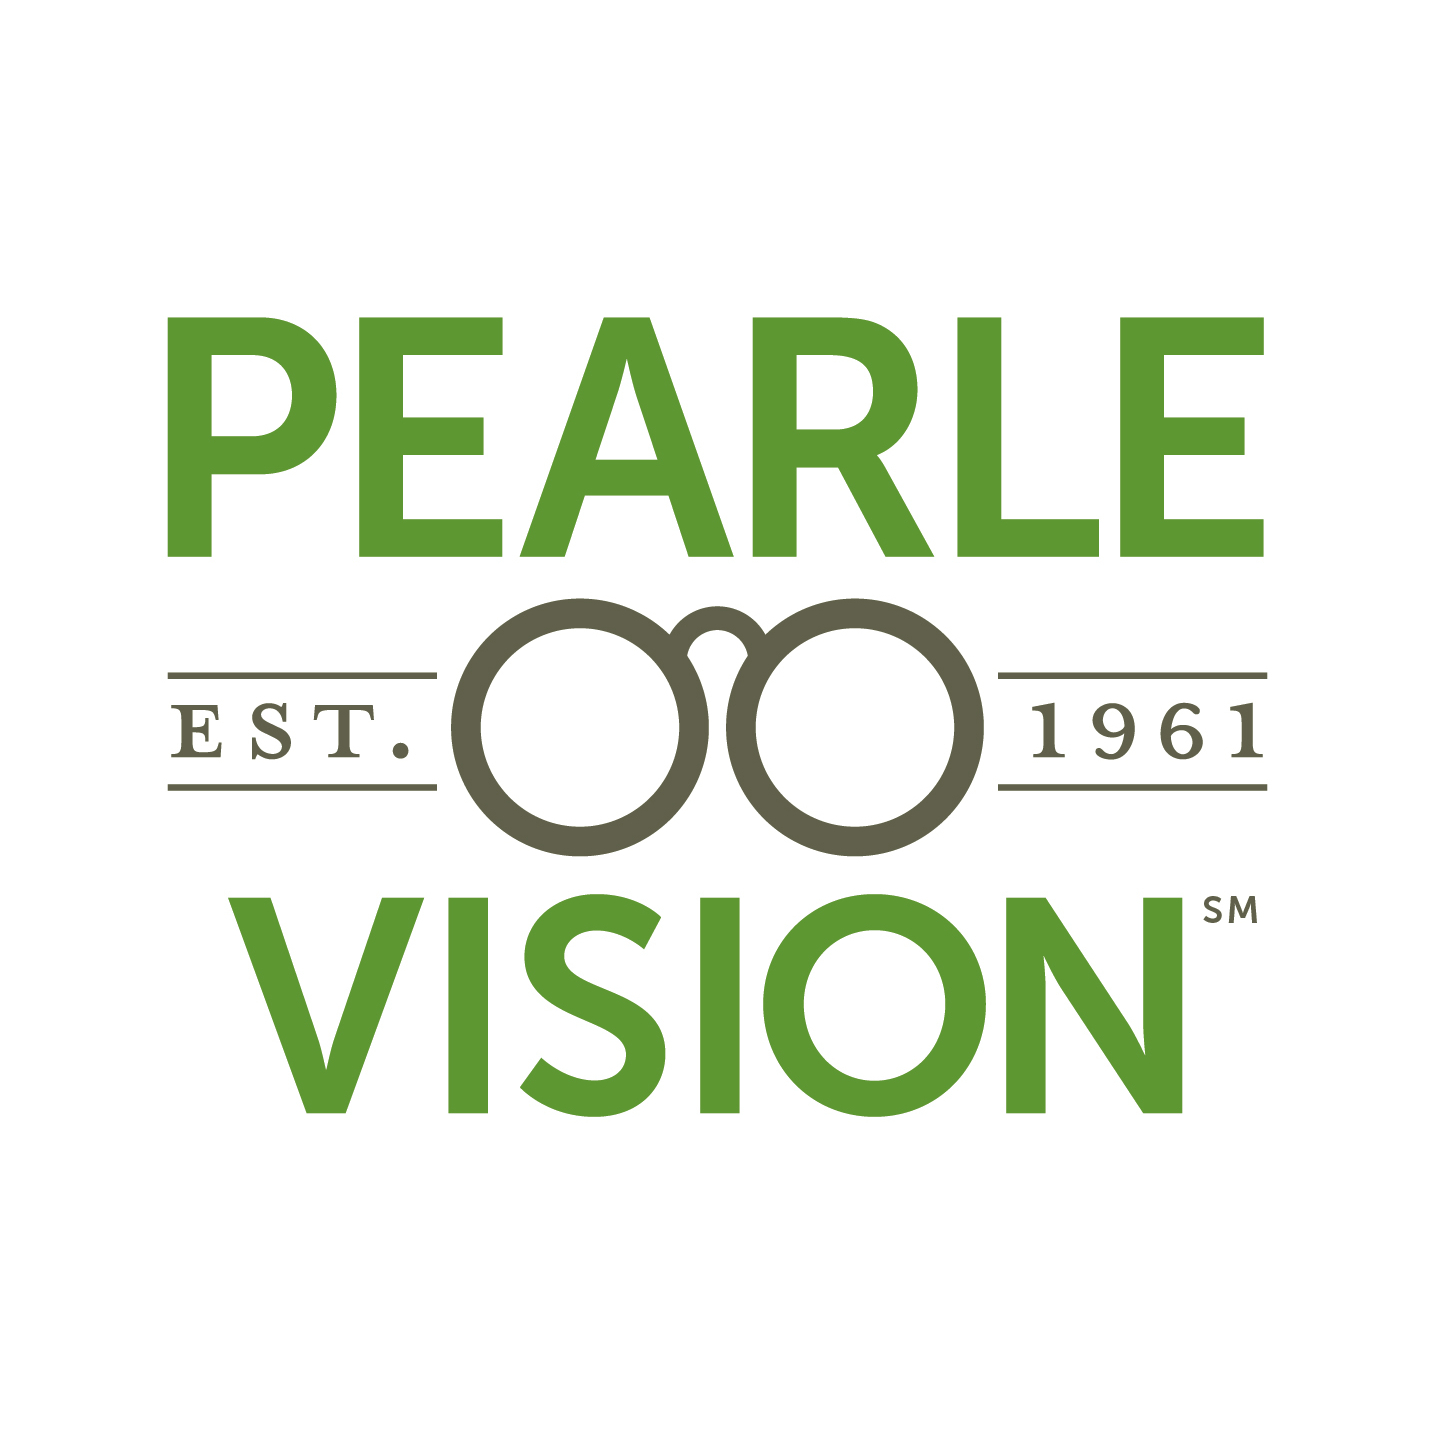 Pearle Vision - St. Paul, MN 55116 - (651)698-2020 | ShowMeLocal.com